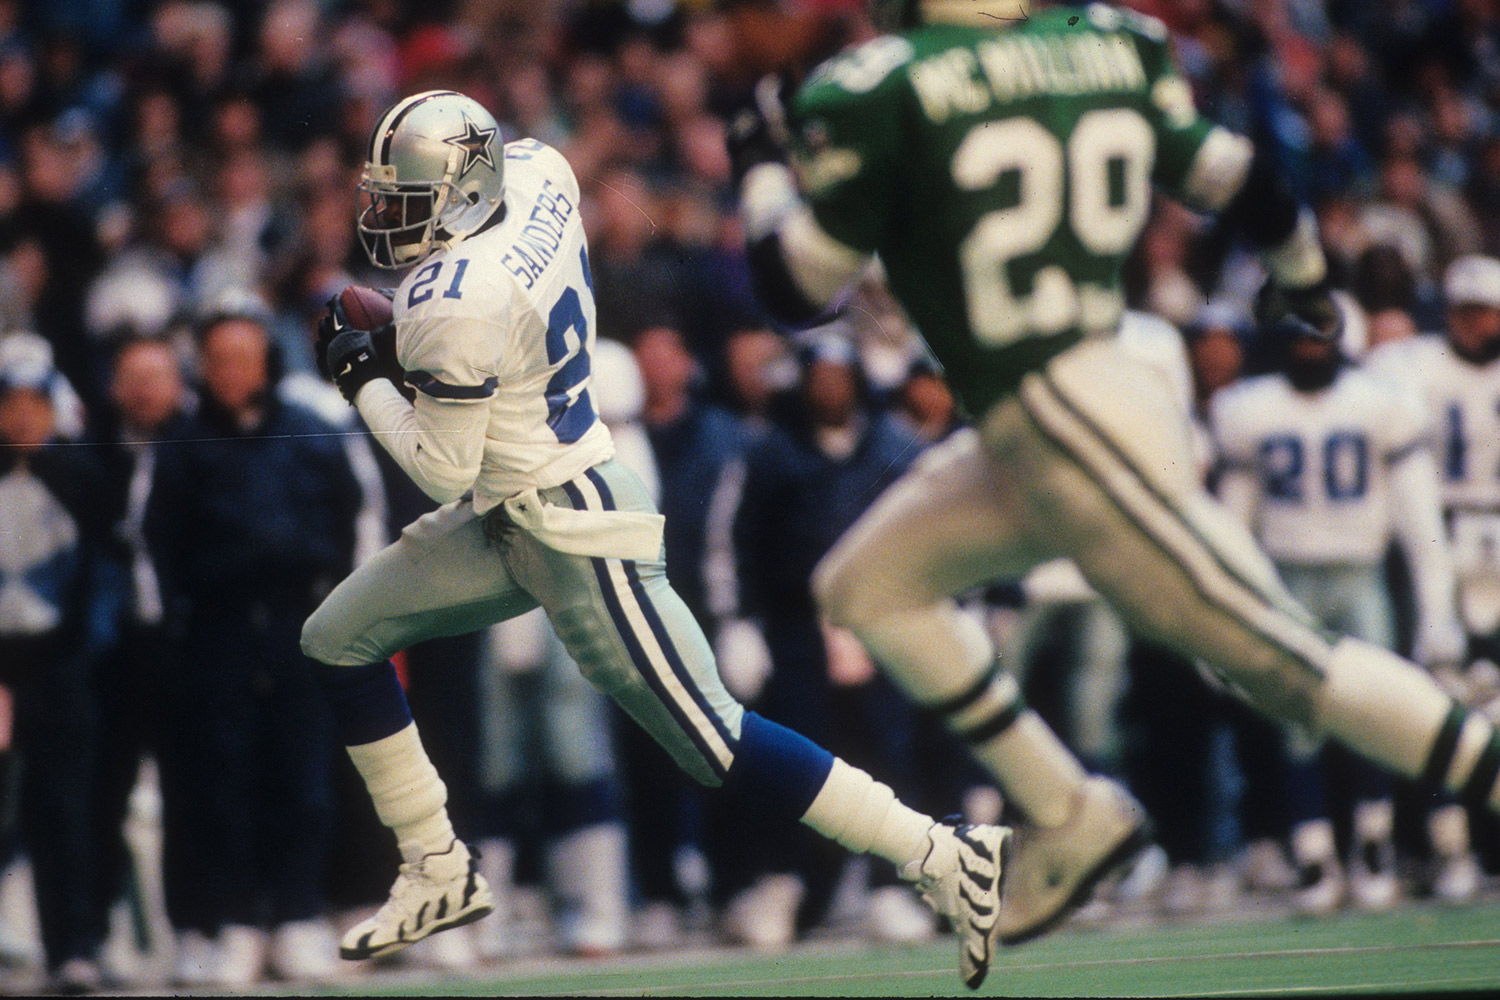 Pro Football Hall of Famer Deion Sanders is one of the most widely recognized football players of all-time due to his time with the Dallas Cowboys and his part-time Major League Baseball career, in which he played nine seasons. Sanders was drafted with the 5th overall pick in 1989. (*Sanders' time was calculated before the NFL implemented electronic timing to improve accuracy.)